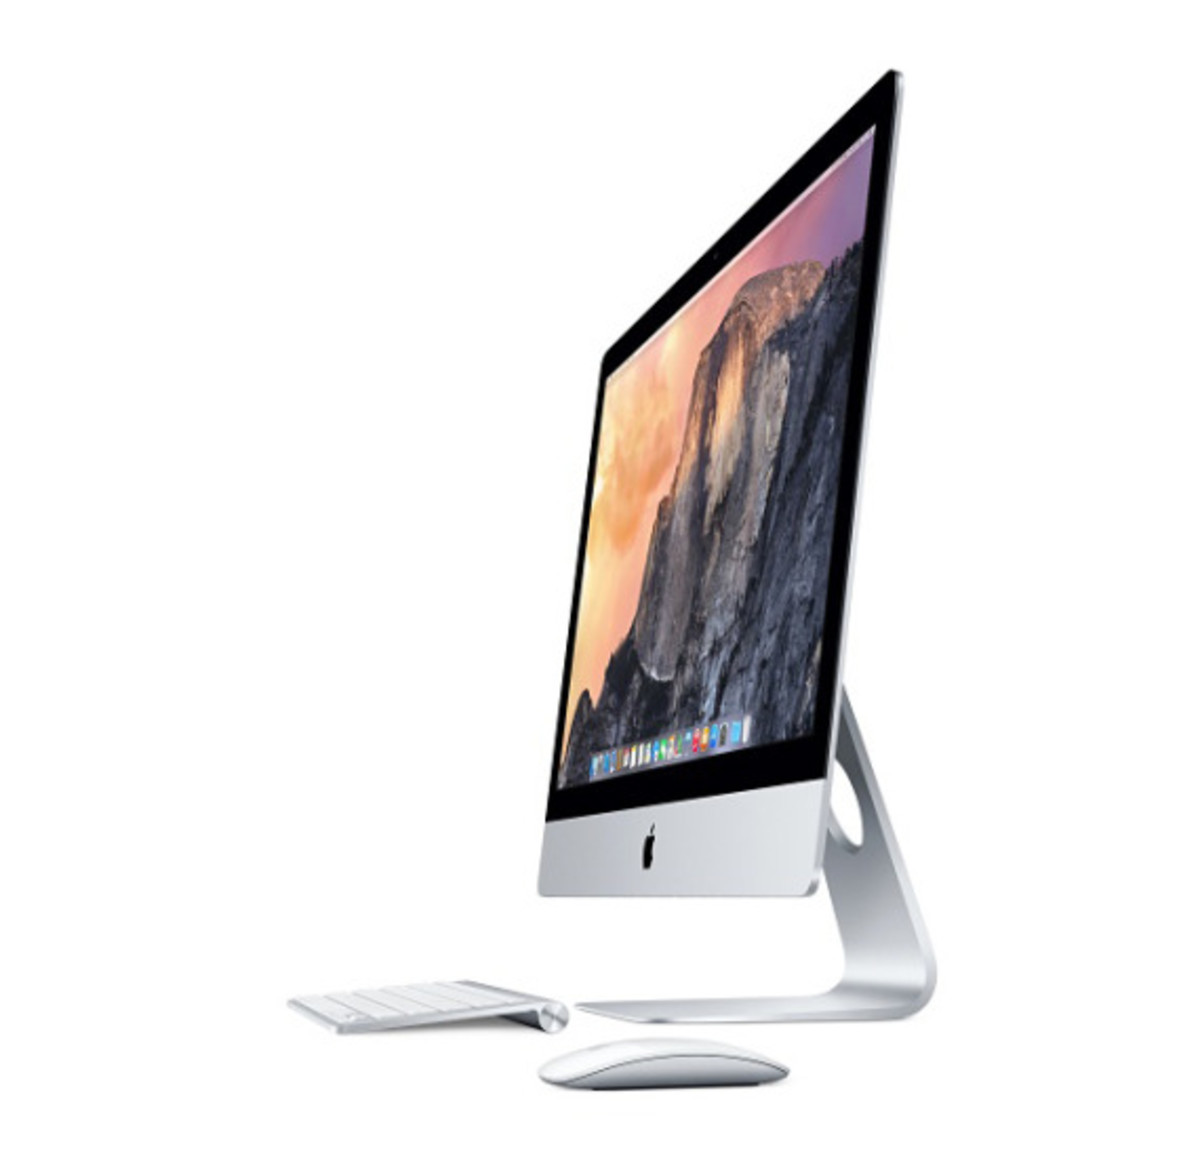 Apple Introduces 27-inch iMac with Retina 5k Display ...